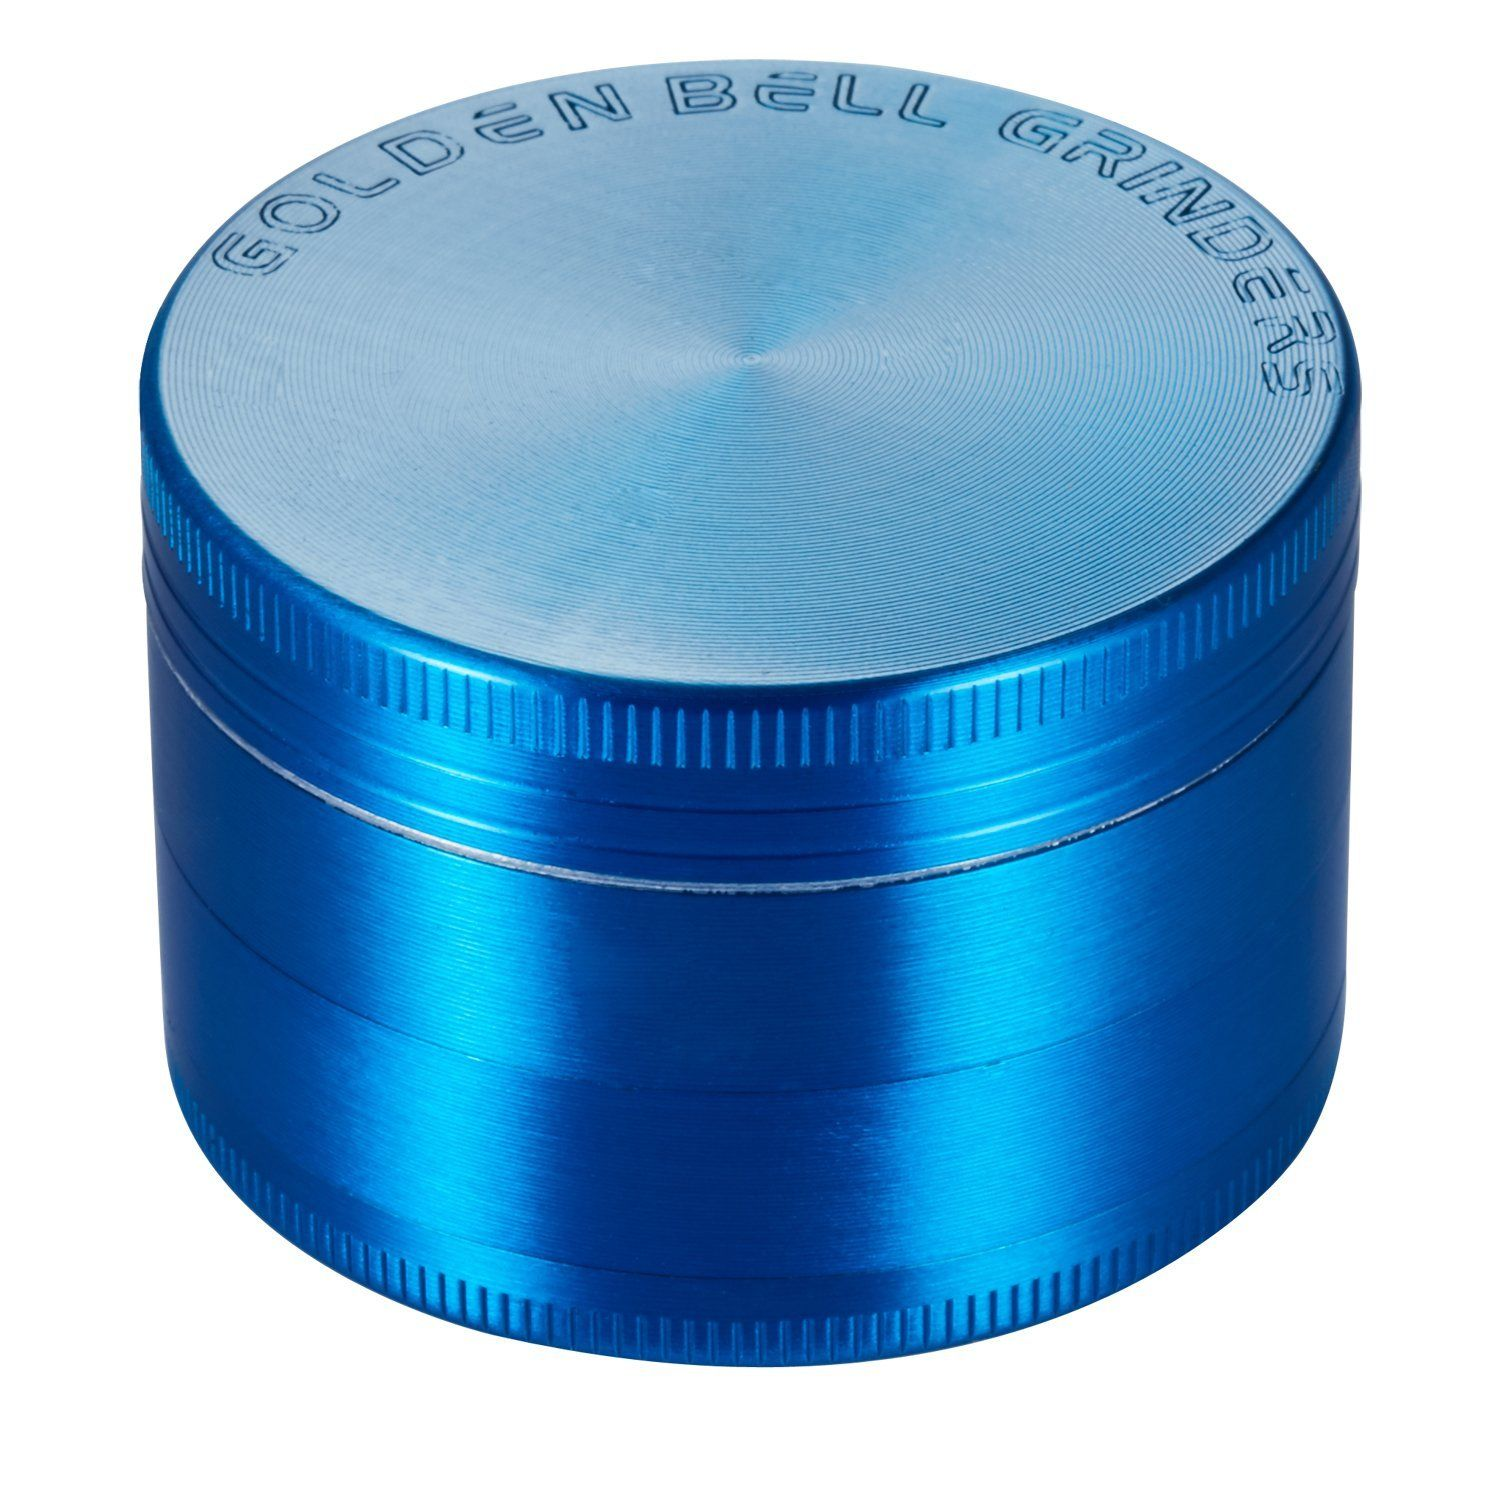 Golden Bell 4 Piece 2\' Spice Herb Grinder - Blue *** This is an ...